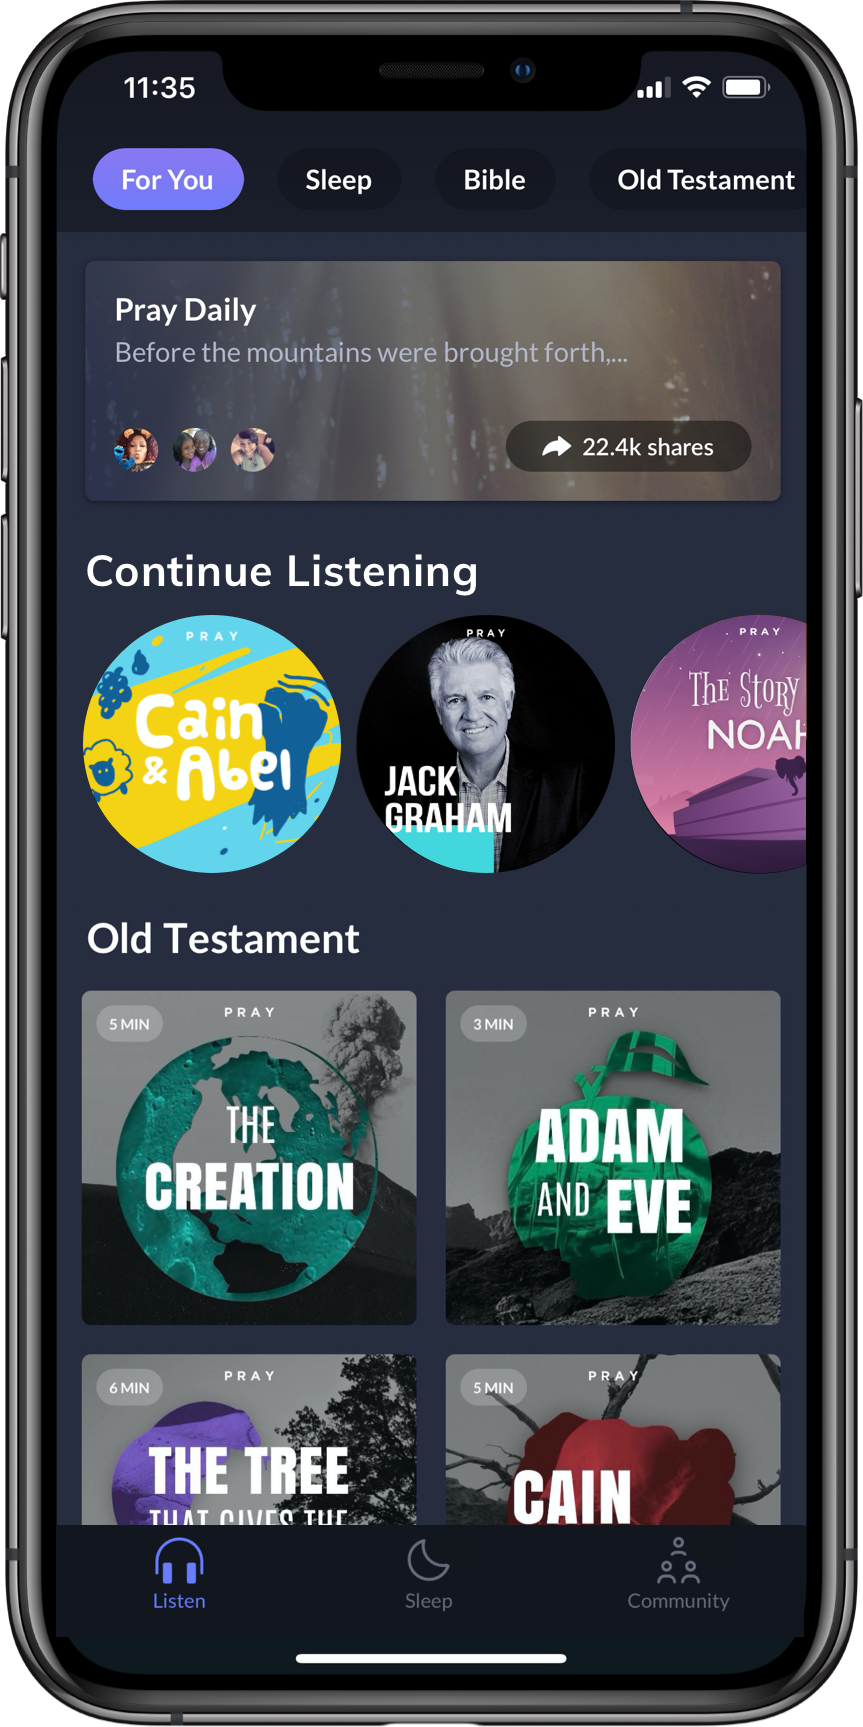 """A cellphone screen showing the Pray.com app with circles to click on for shows to listen to, including """"Cain & Abel"""" and """"The Creation."""""""